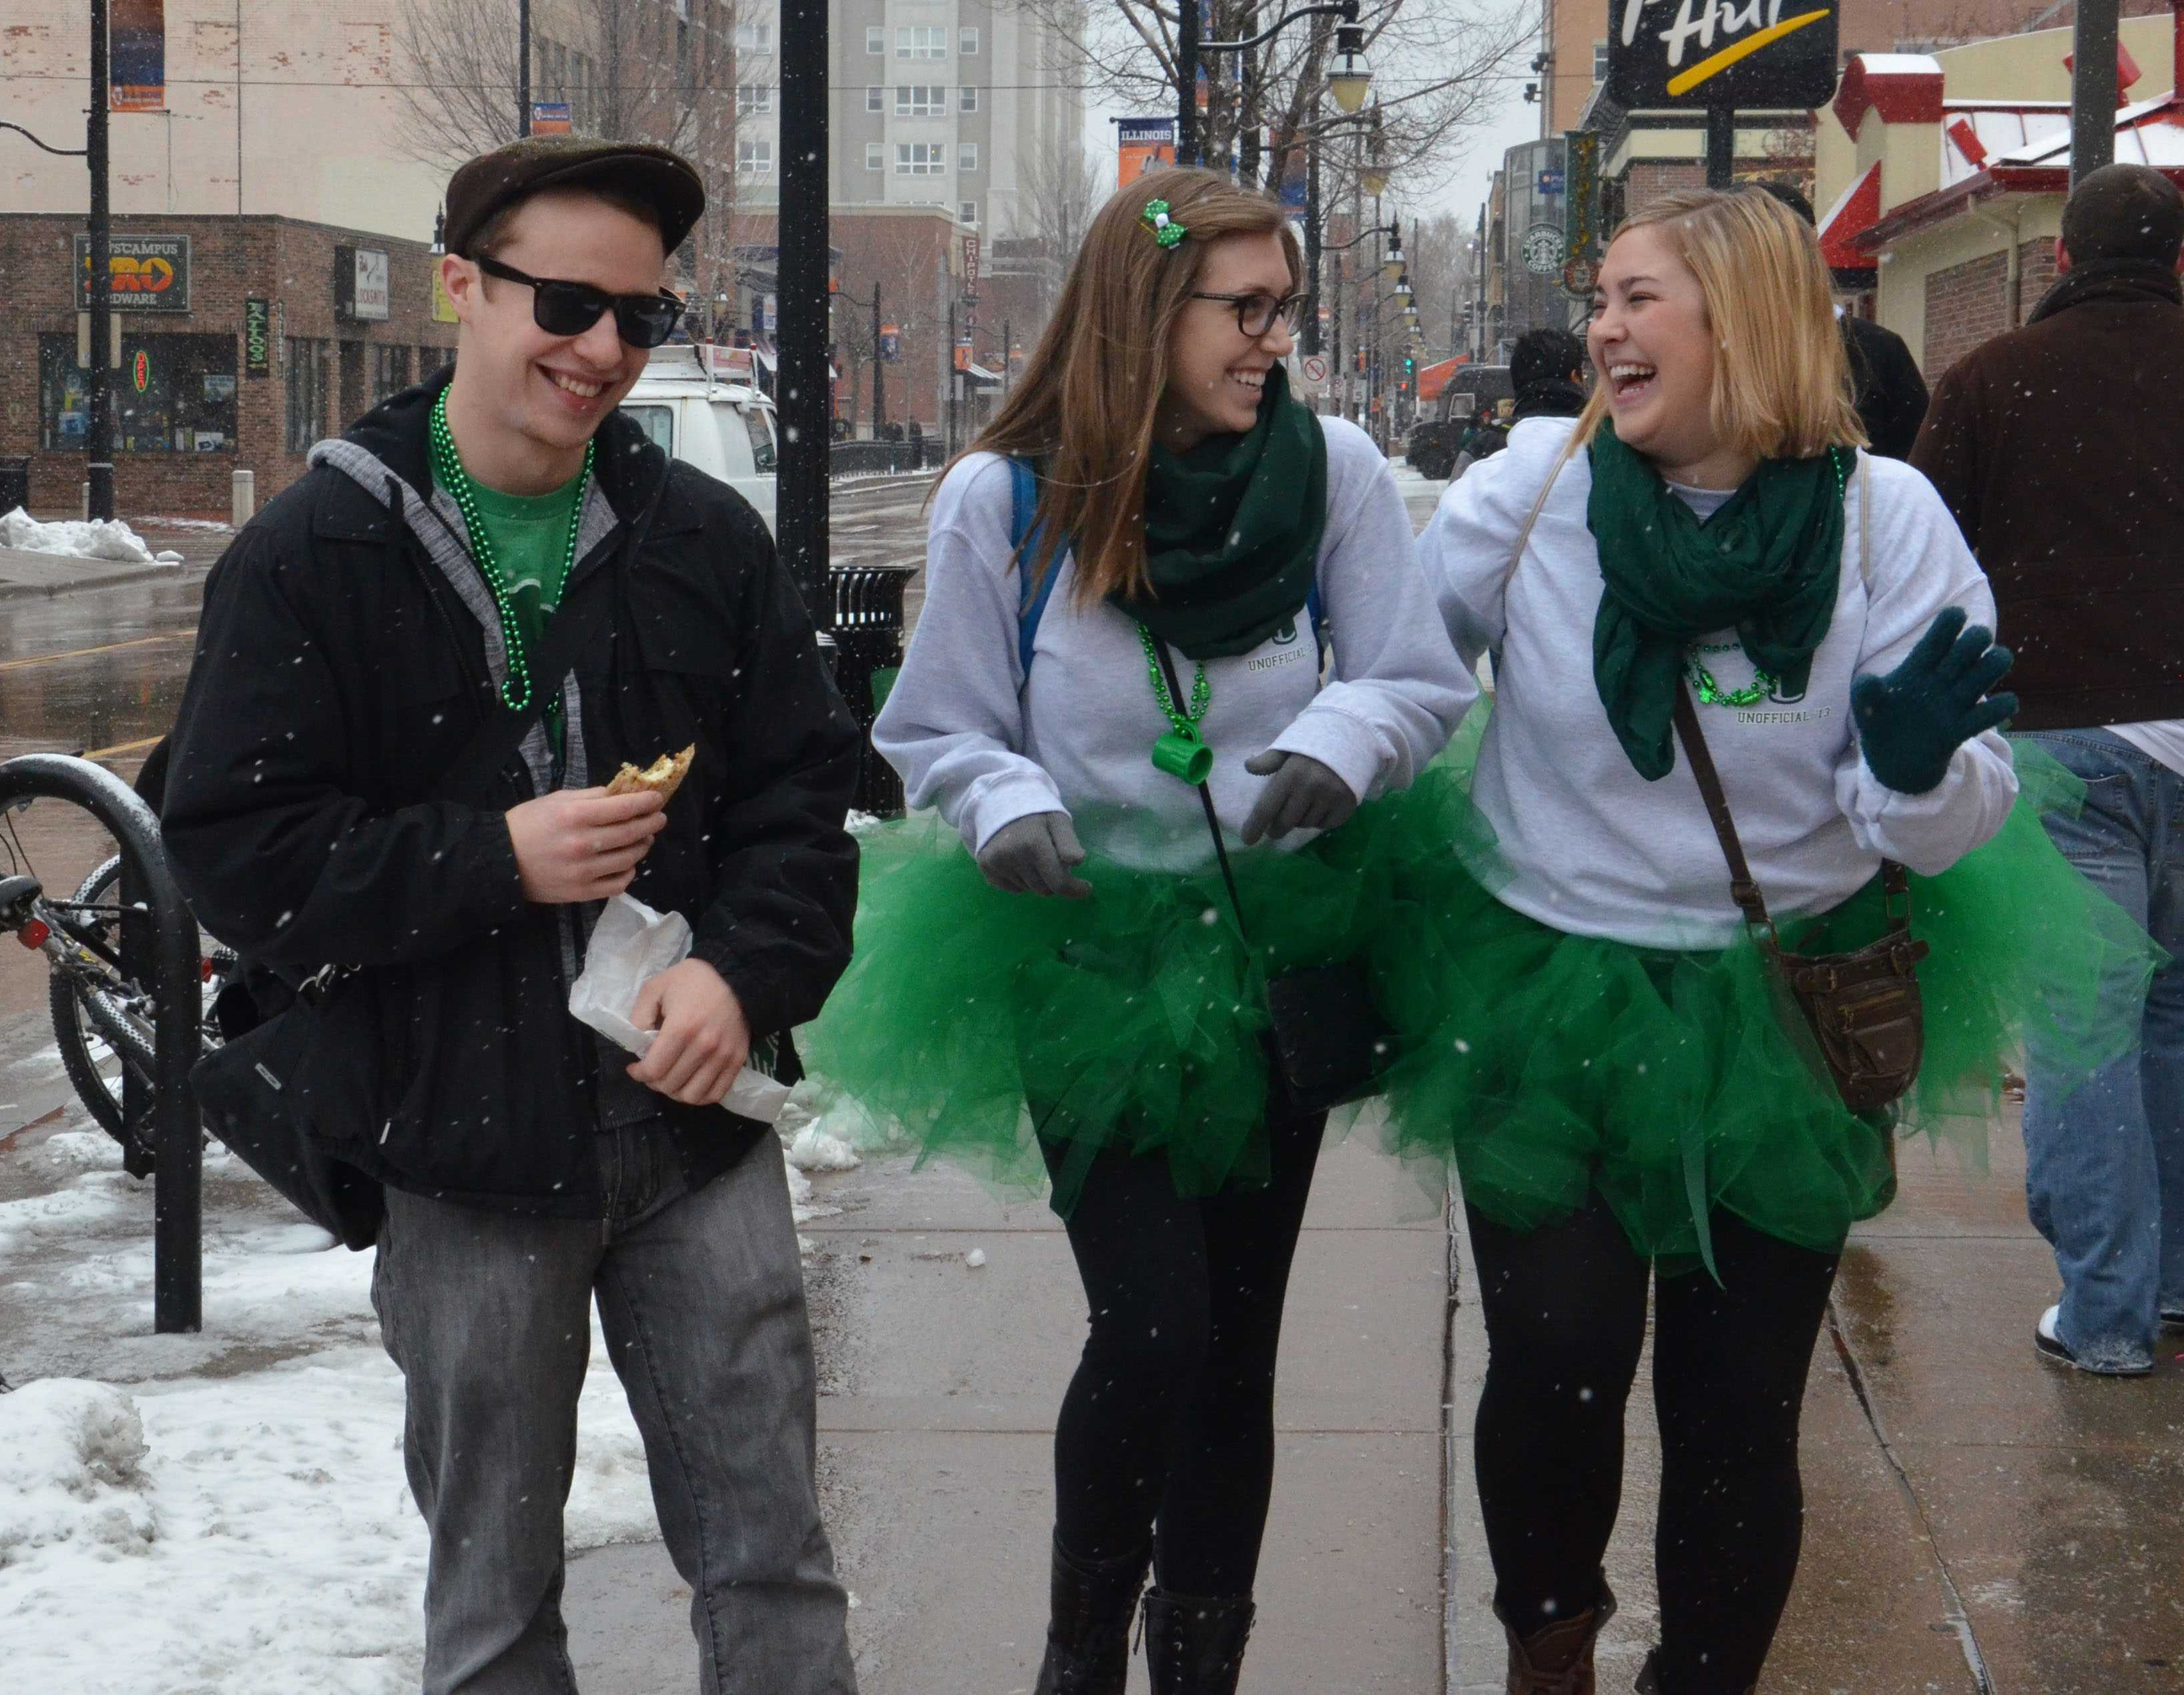 Students walk down Green Street during Unofficial 2013.